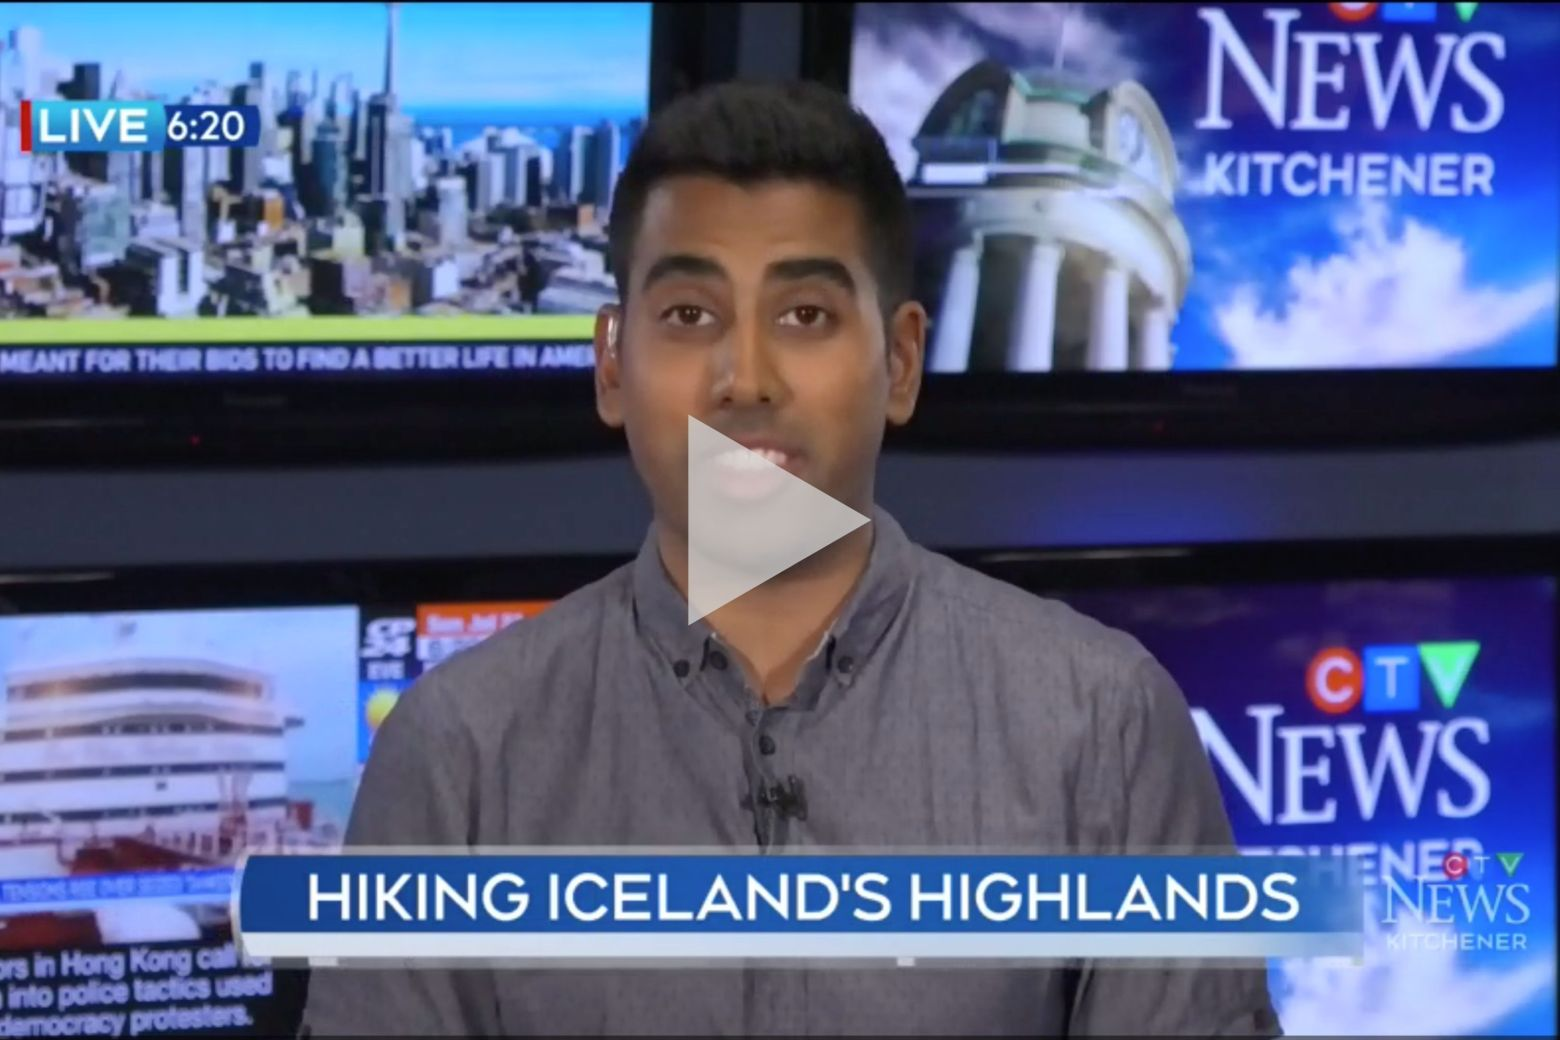 - CTV Kitchener's Zayn Jinah interviews Ryan Richardson and Hailey Playfair about their trek across Iceland.